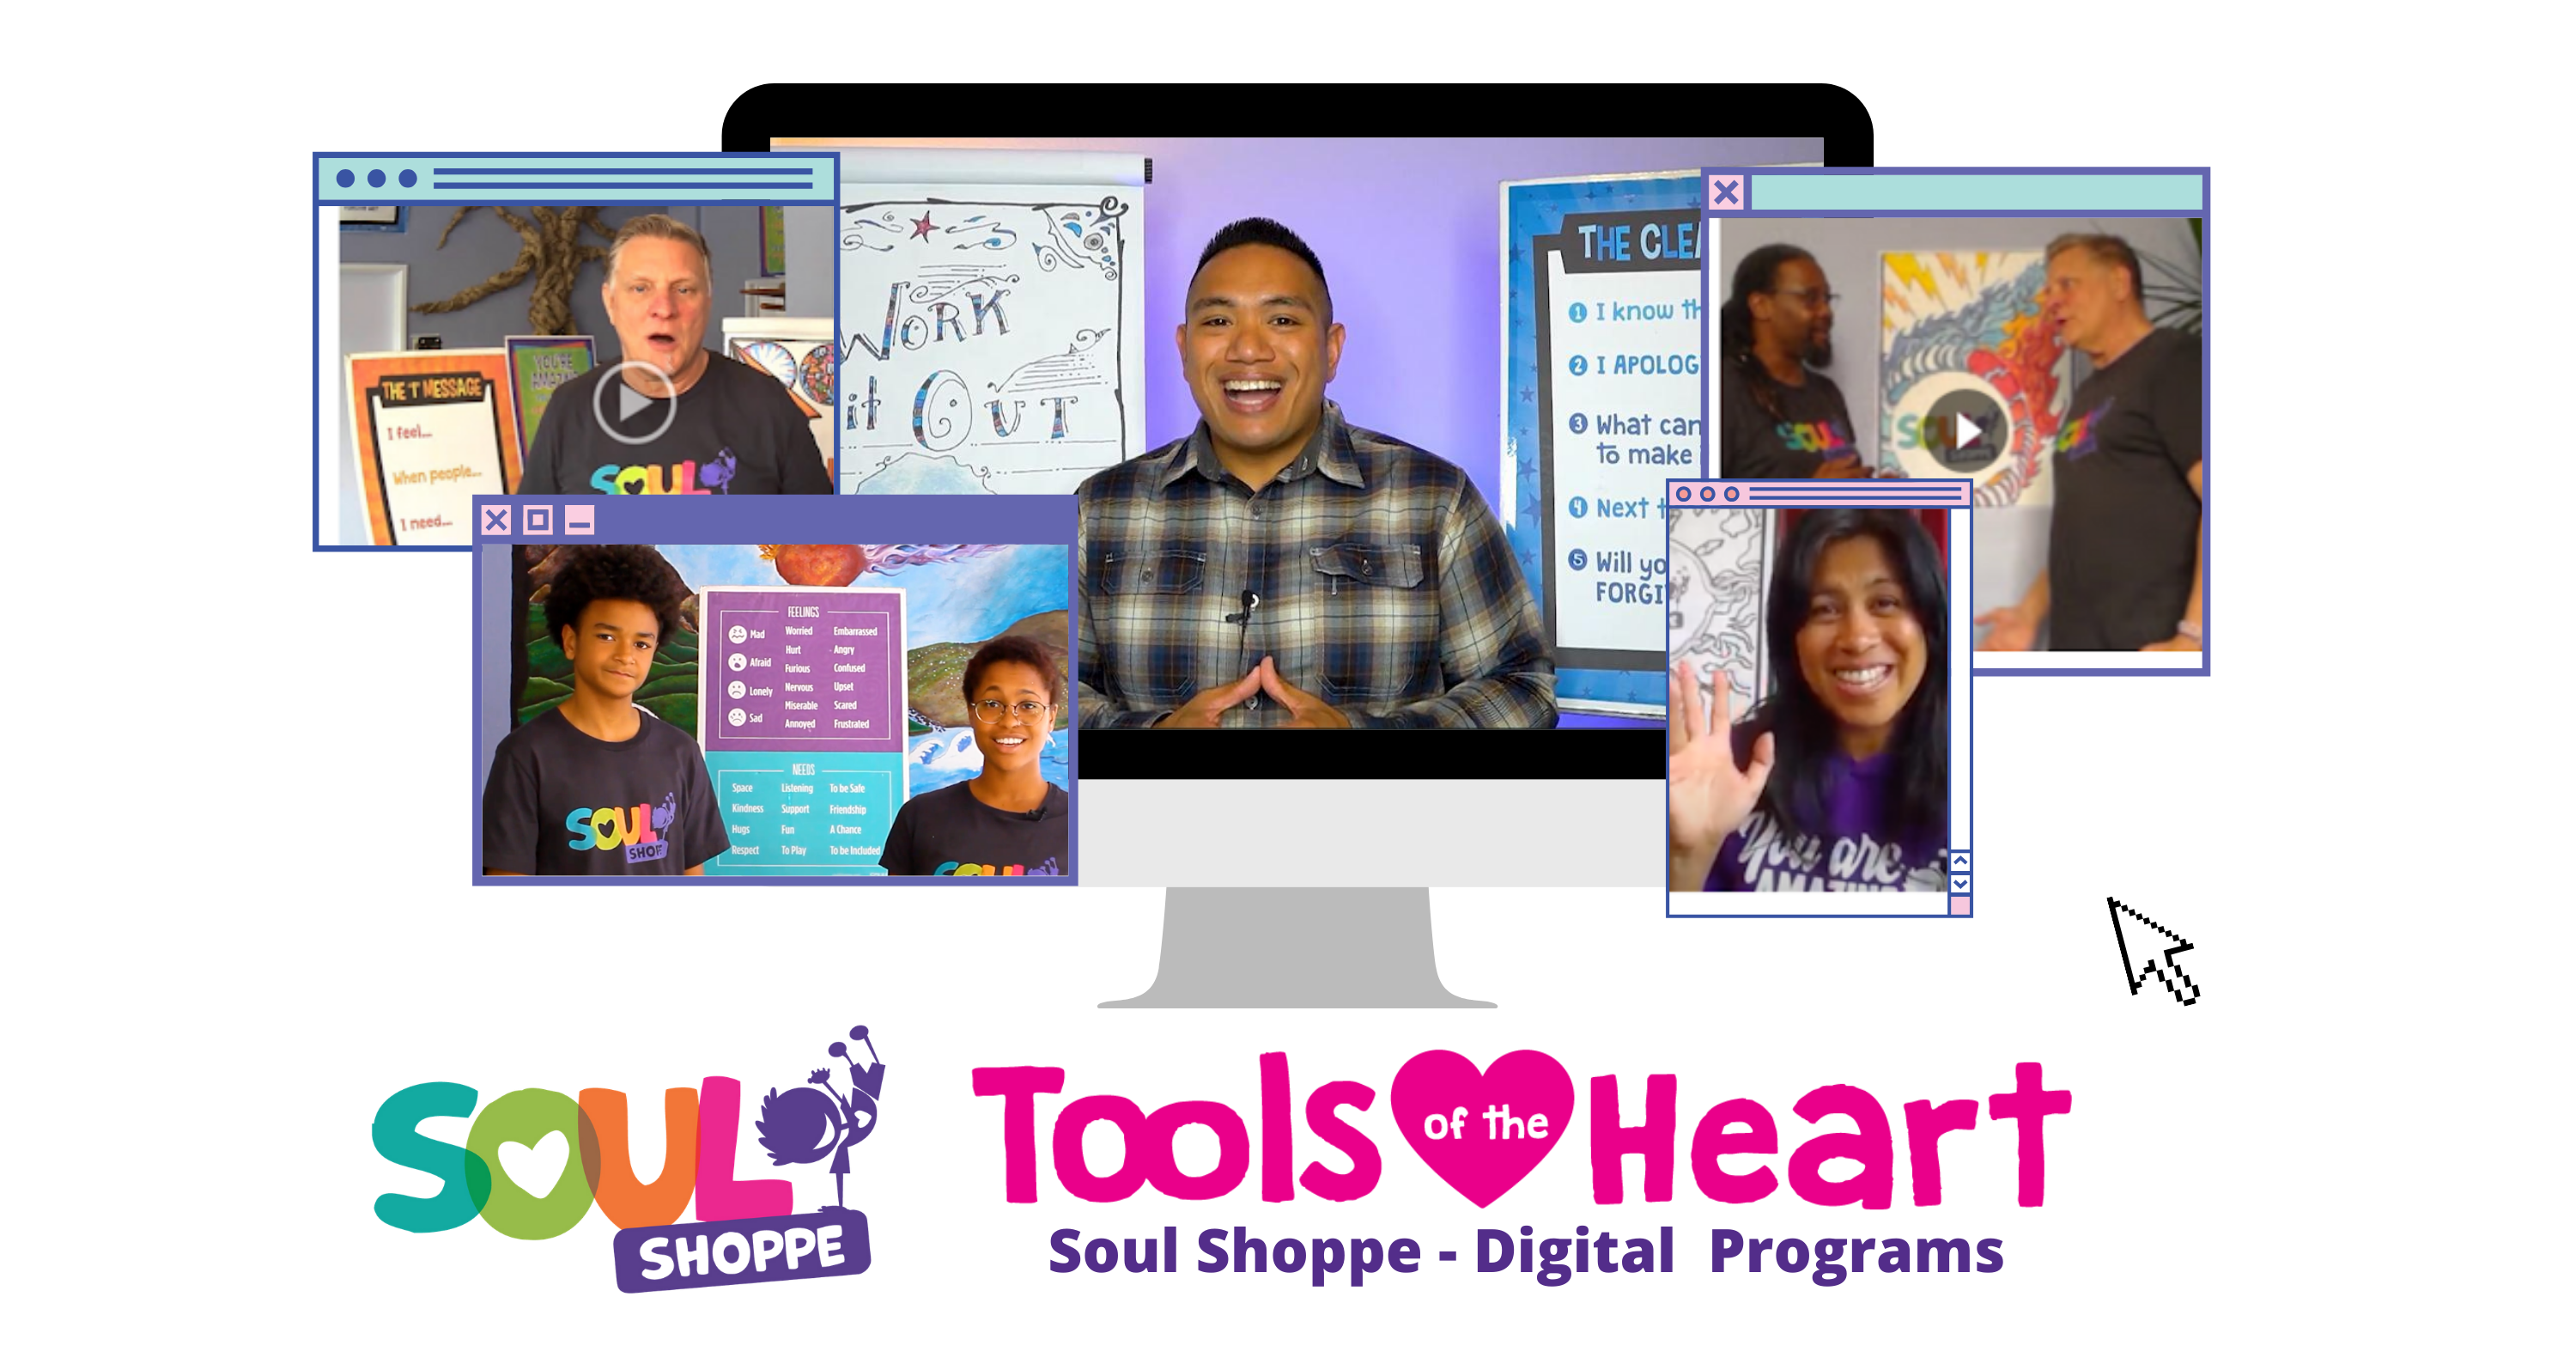 Social Emotional Learning Programs Online - Tools of the Heart